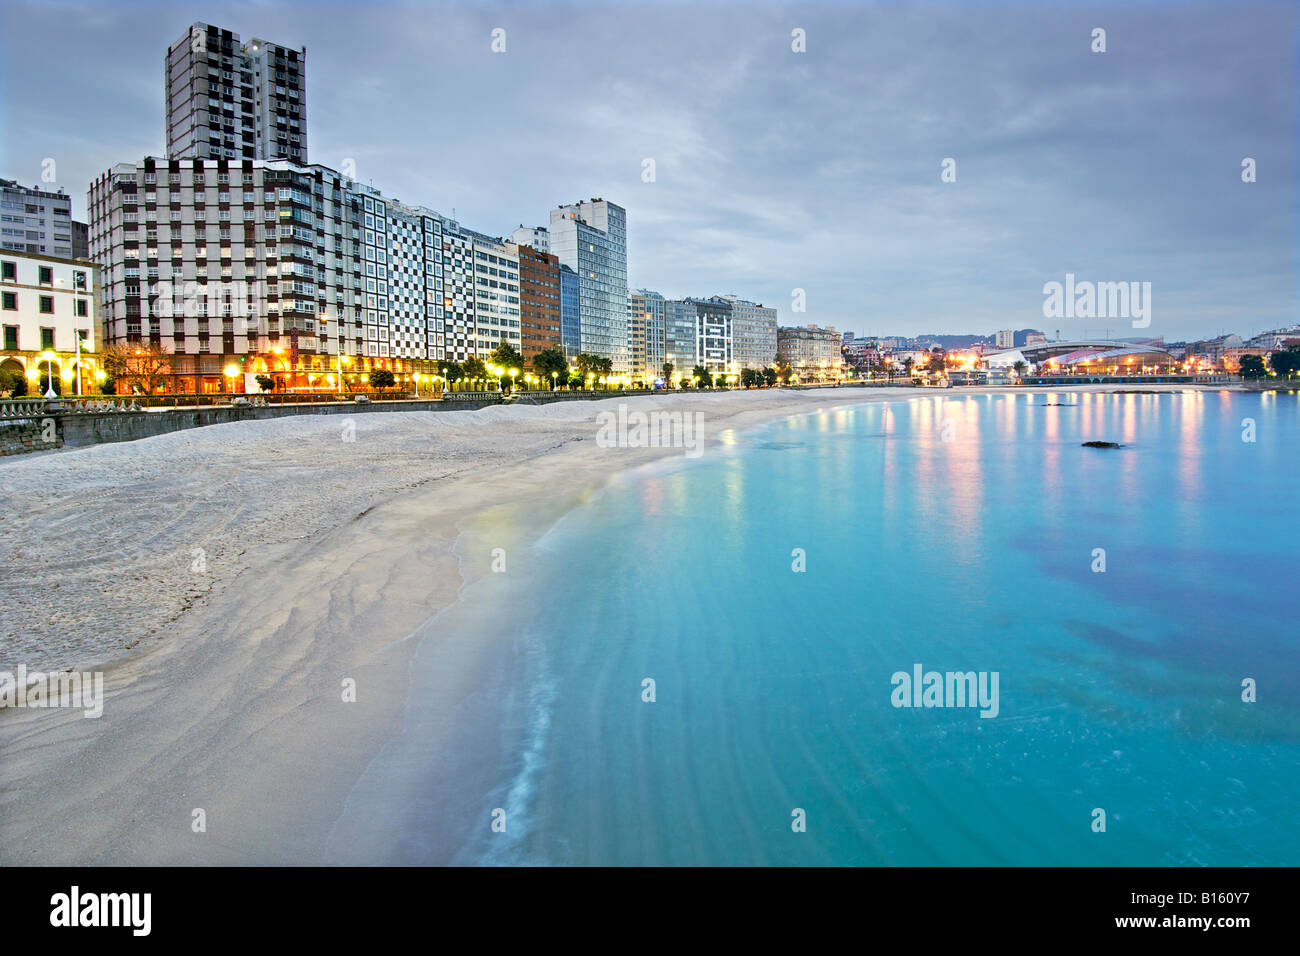 Dawn view of the Playa de Orzan beach in the town of La Coruña in Spain's Galicia region. - Stock Image